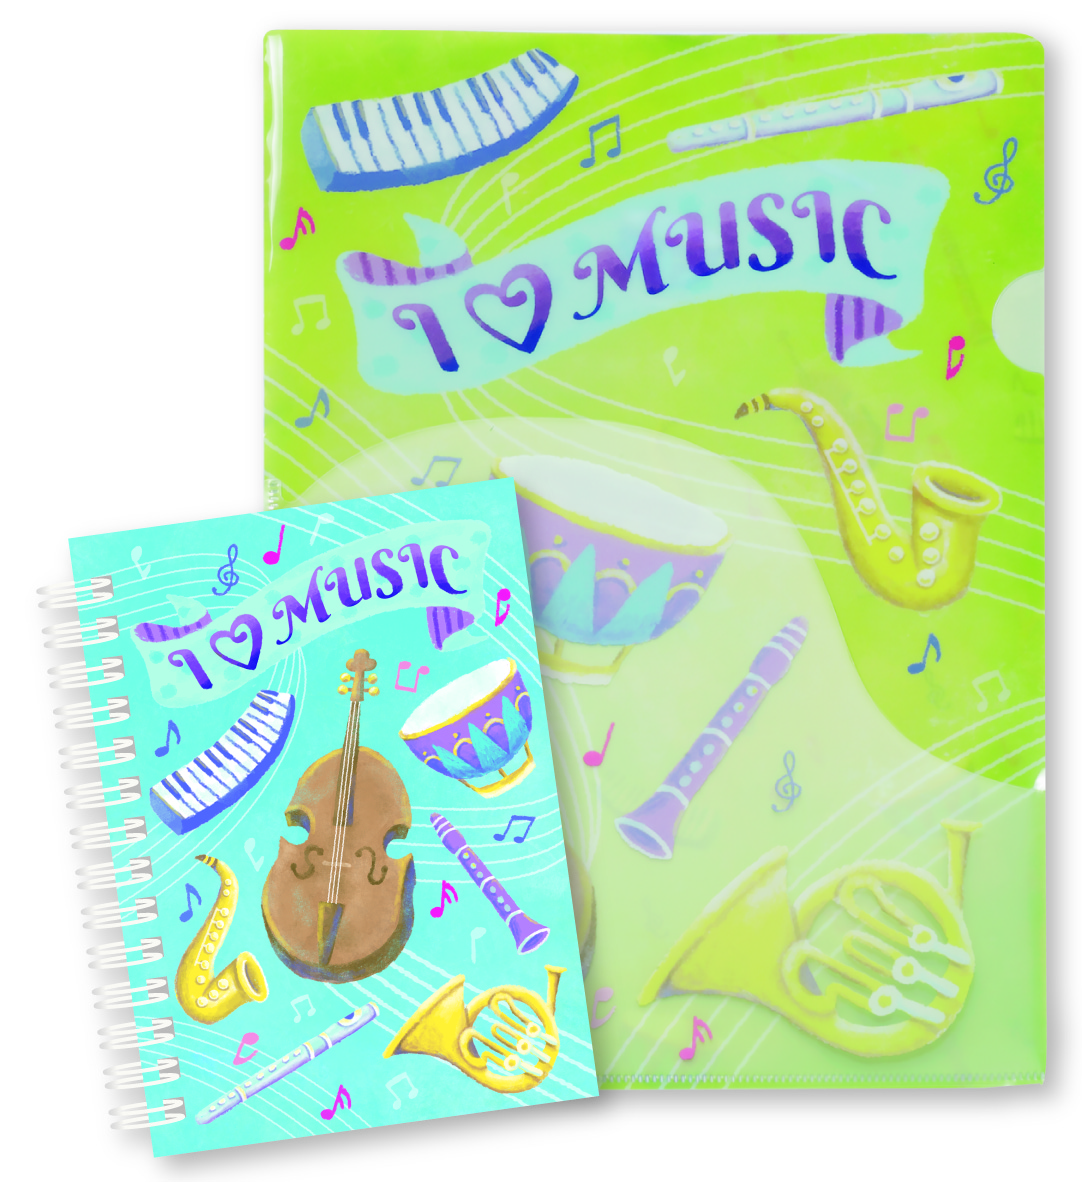 I  LOVE MUSIC ポケットファイル&リングメモセット※お取り寄せ商品 引き出物 記念品 音楽雑貨 音符 ピアノモチーフ ト音記号 ピアノ雑貨